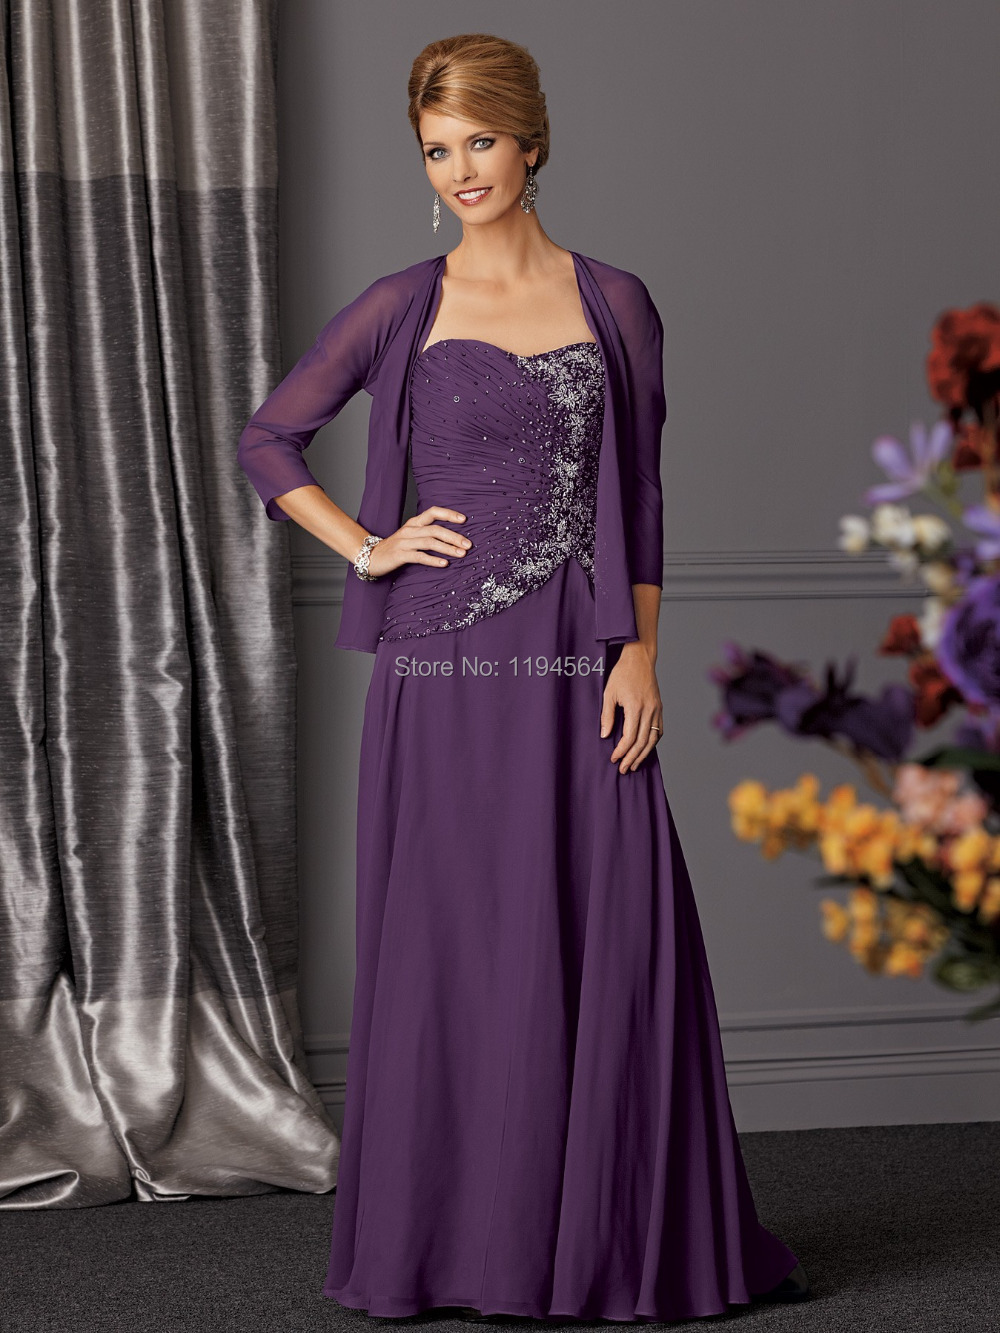 2015 purple chiffon mothers dresses for beach weddings for Womens dress jacket wedding